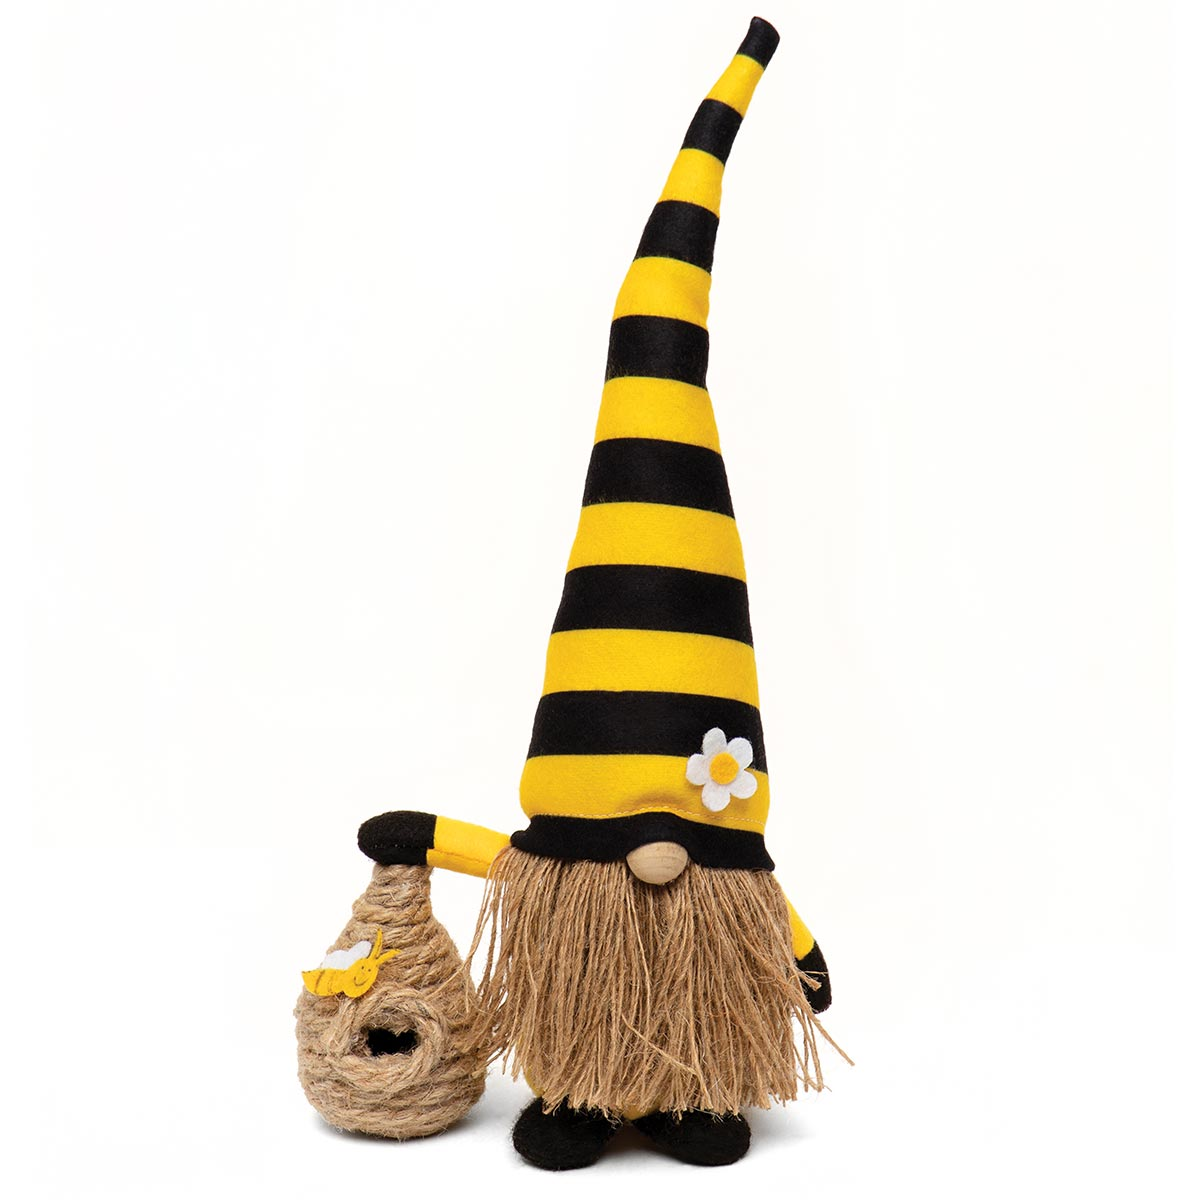 HUMBLE BEE GNOME HOLDING A BEE SKEP WITH YELLOW/BLACK STRIPED BE